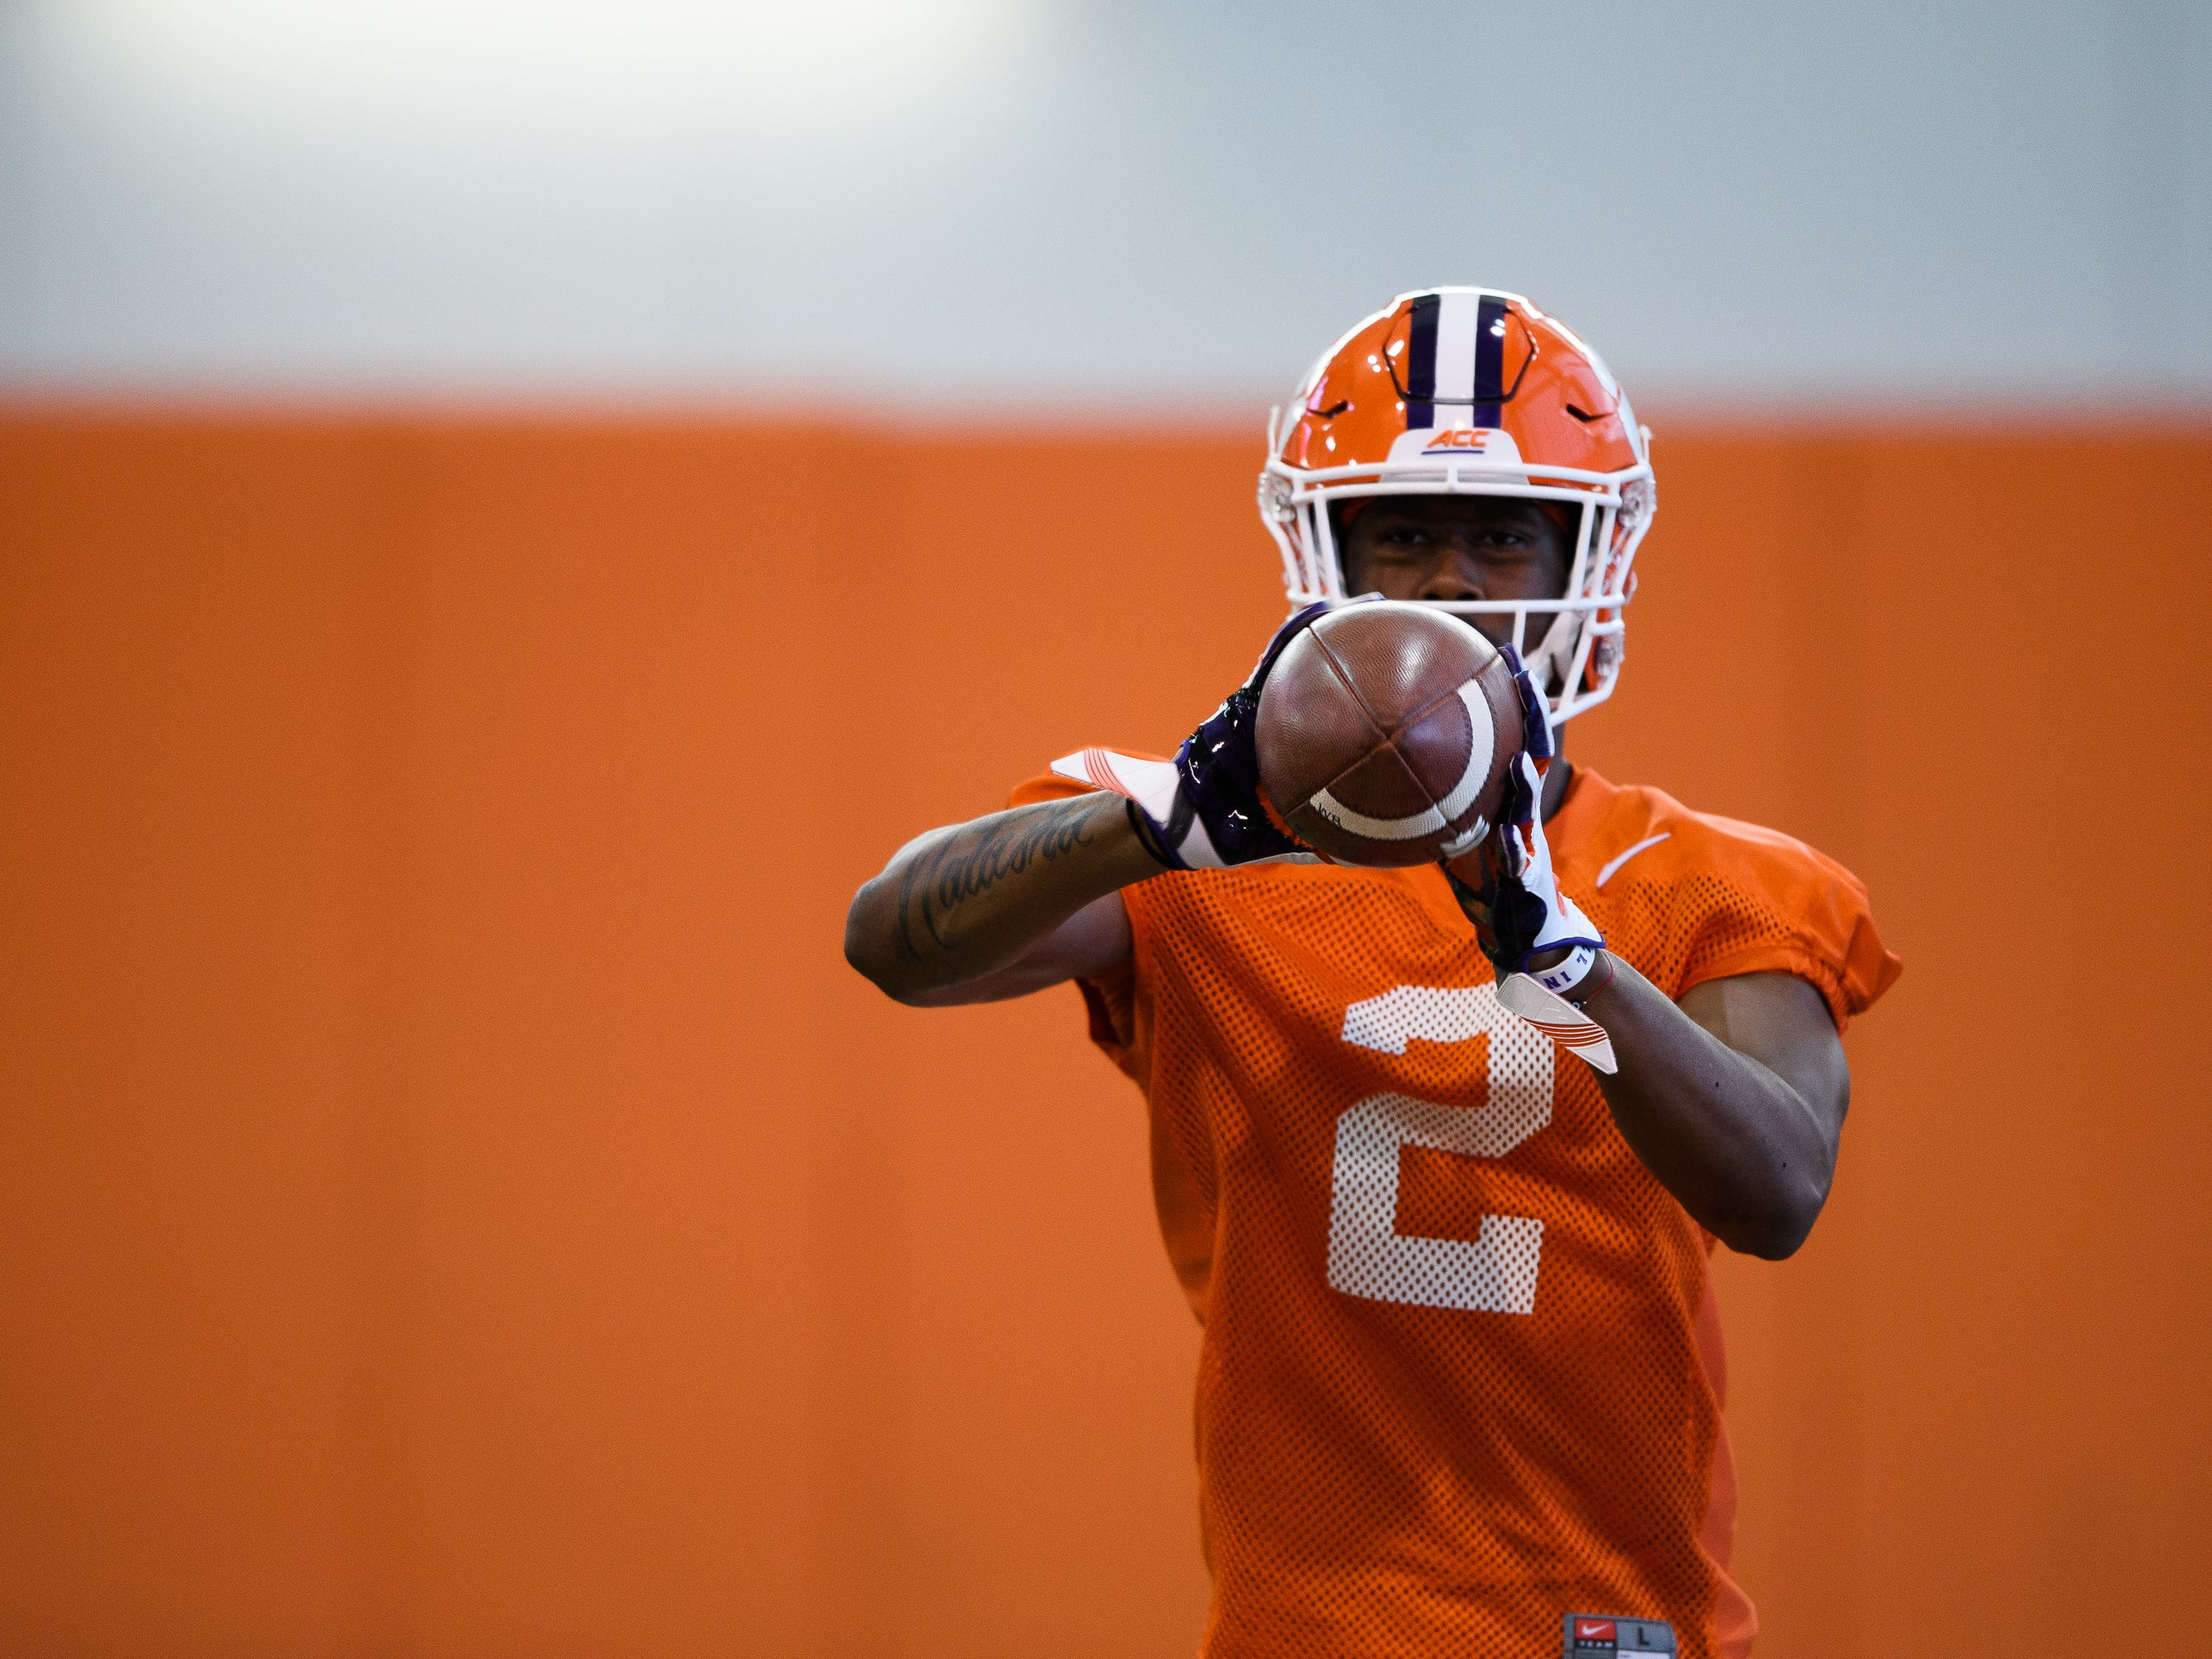 Clemson wide receiver Frank Ladson, Jr. catches the ball during practice at the Allen Reeves Football Complex on Wednesday, Feb. 27, 2019.